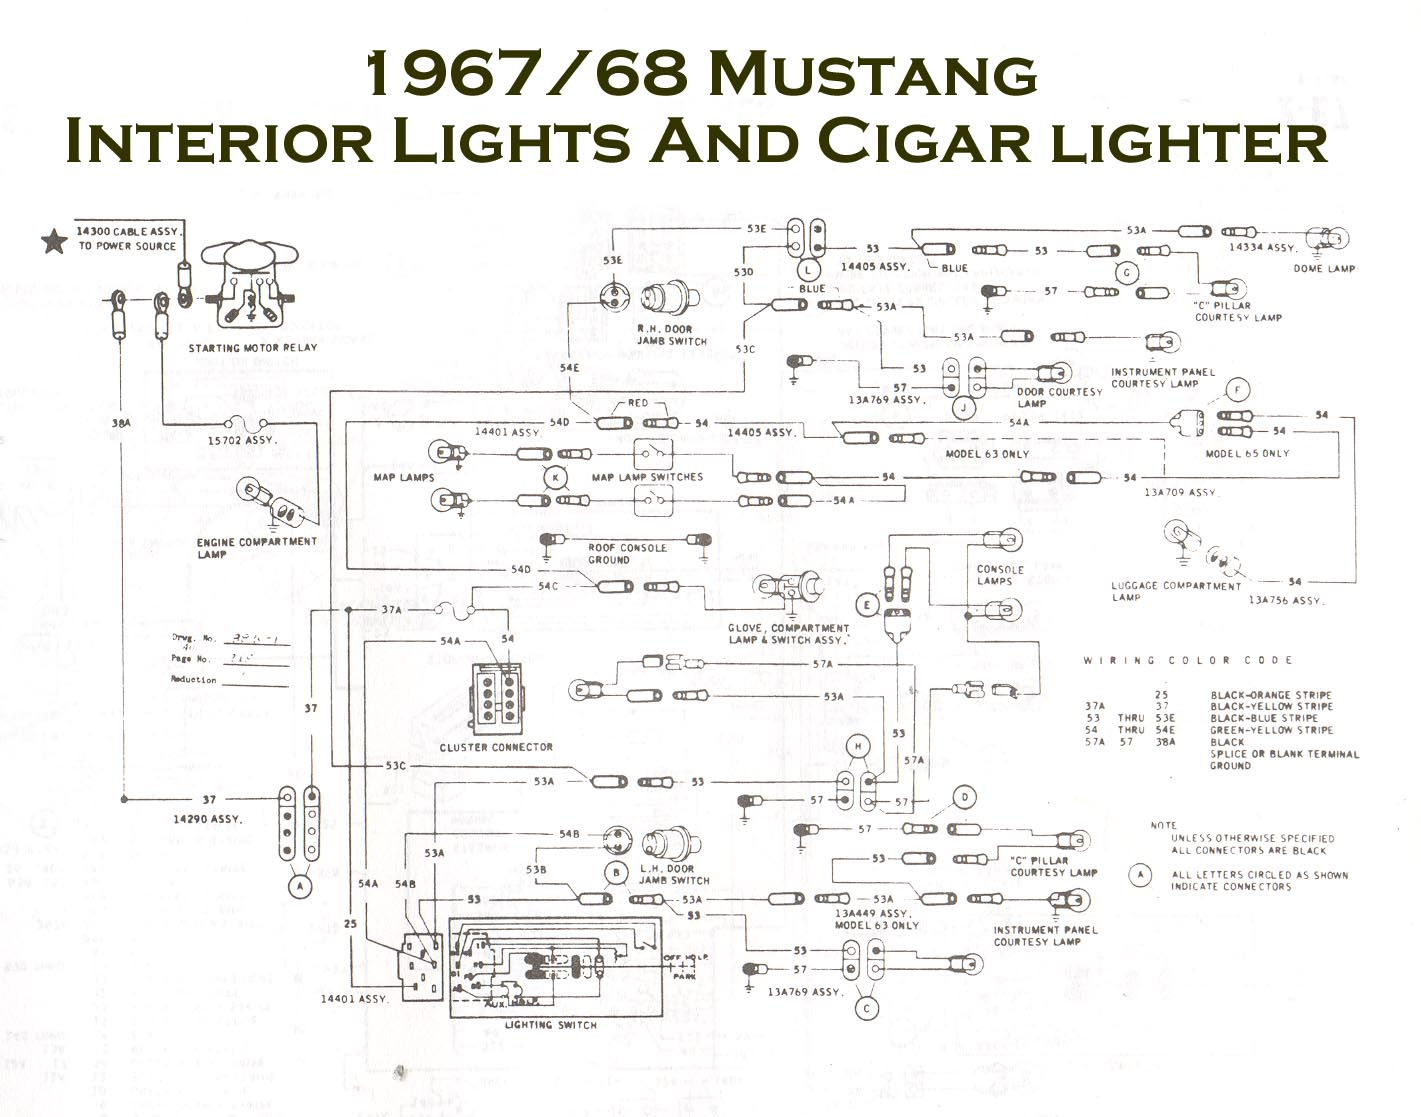 1969 Ford Mustang 289 Engine Wiring Diagram Radio Schematic 1968 Steering Column Diagram1968 Free Diagramvintage